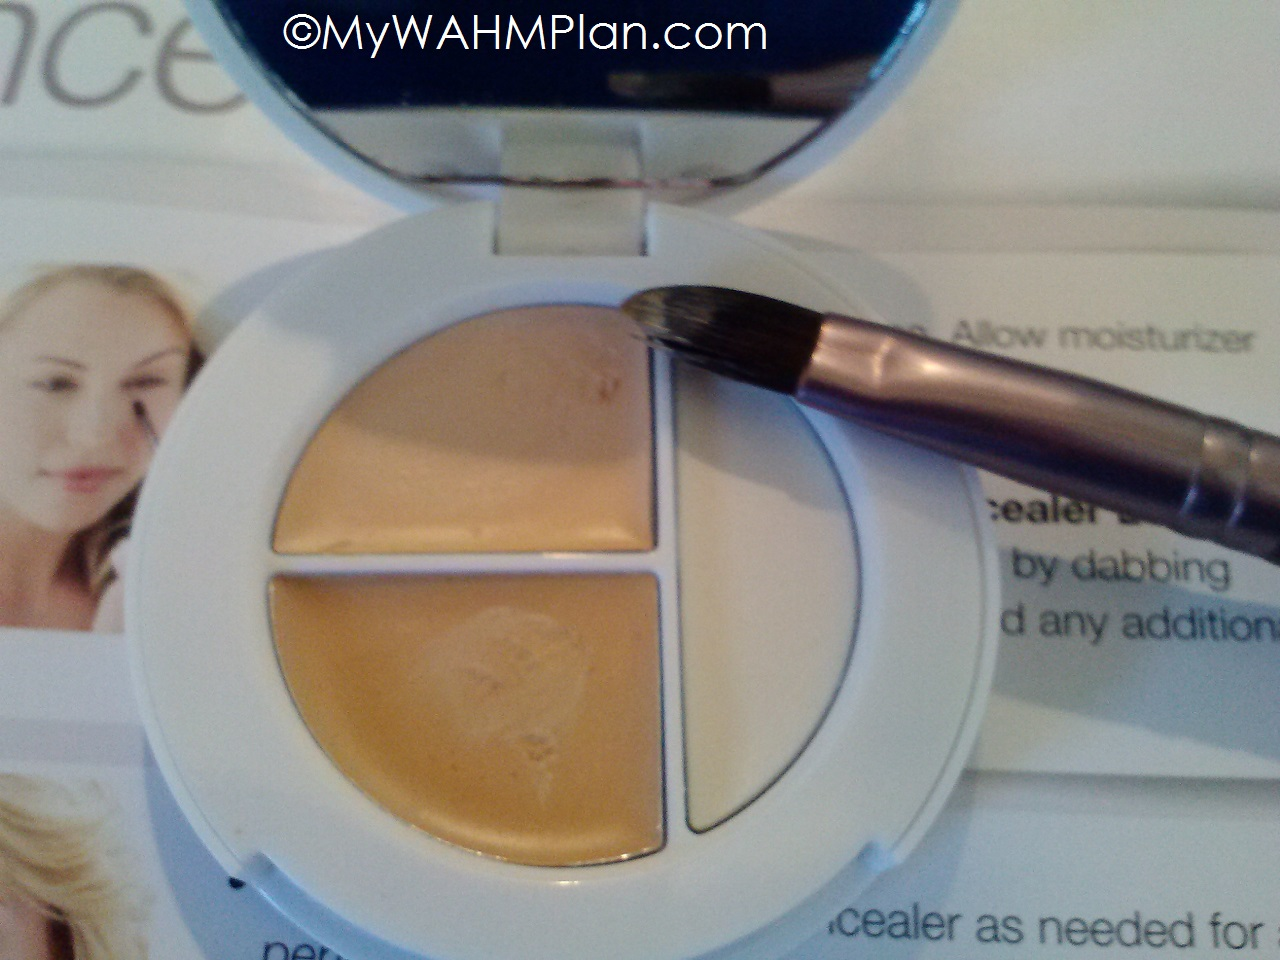 Sheer Cover Studio #Concealer and Brightening Duo #makeup